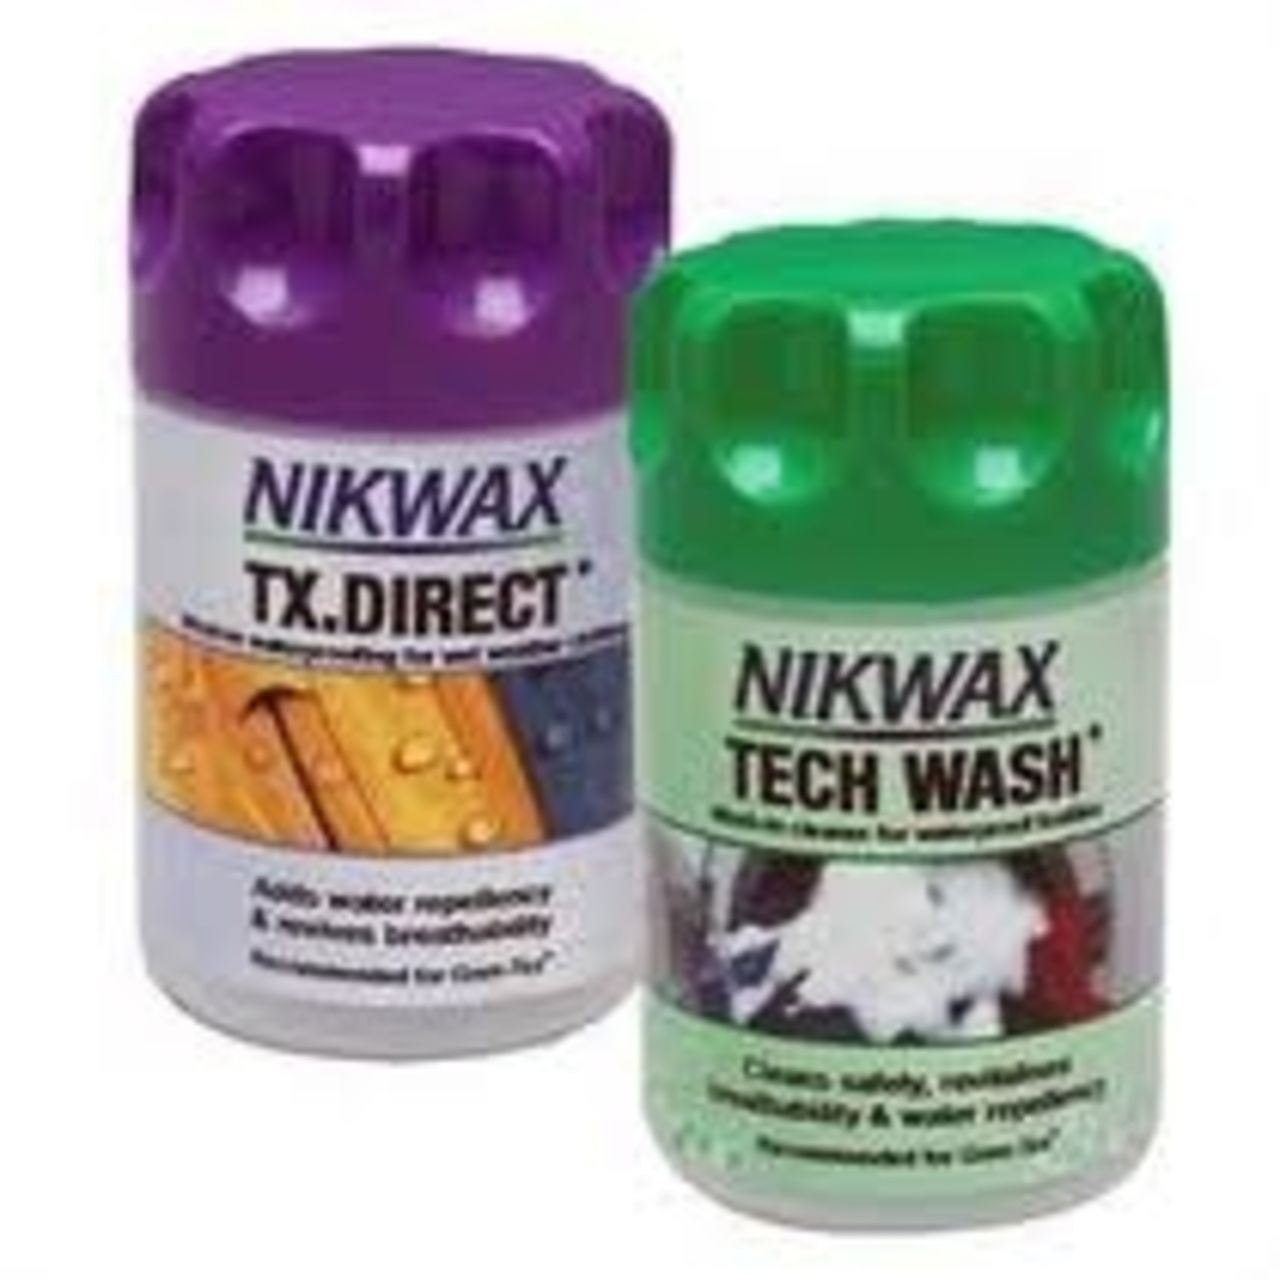 Nikwax Clothing Tech Wash TX Direct Mini Twin Waterproof Textiles Pack